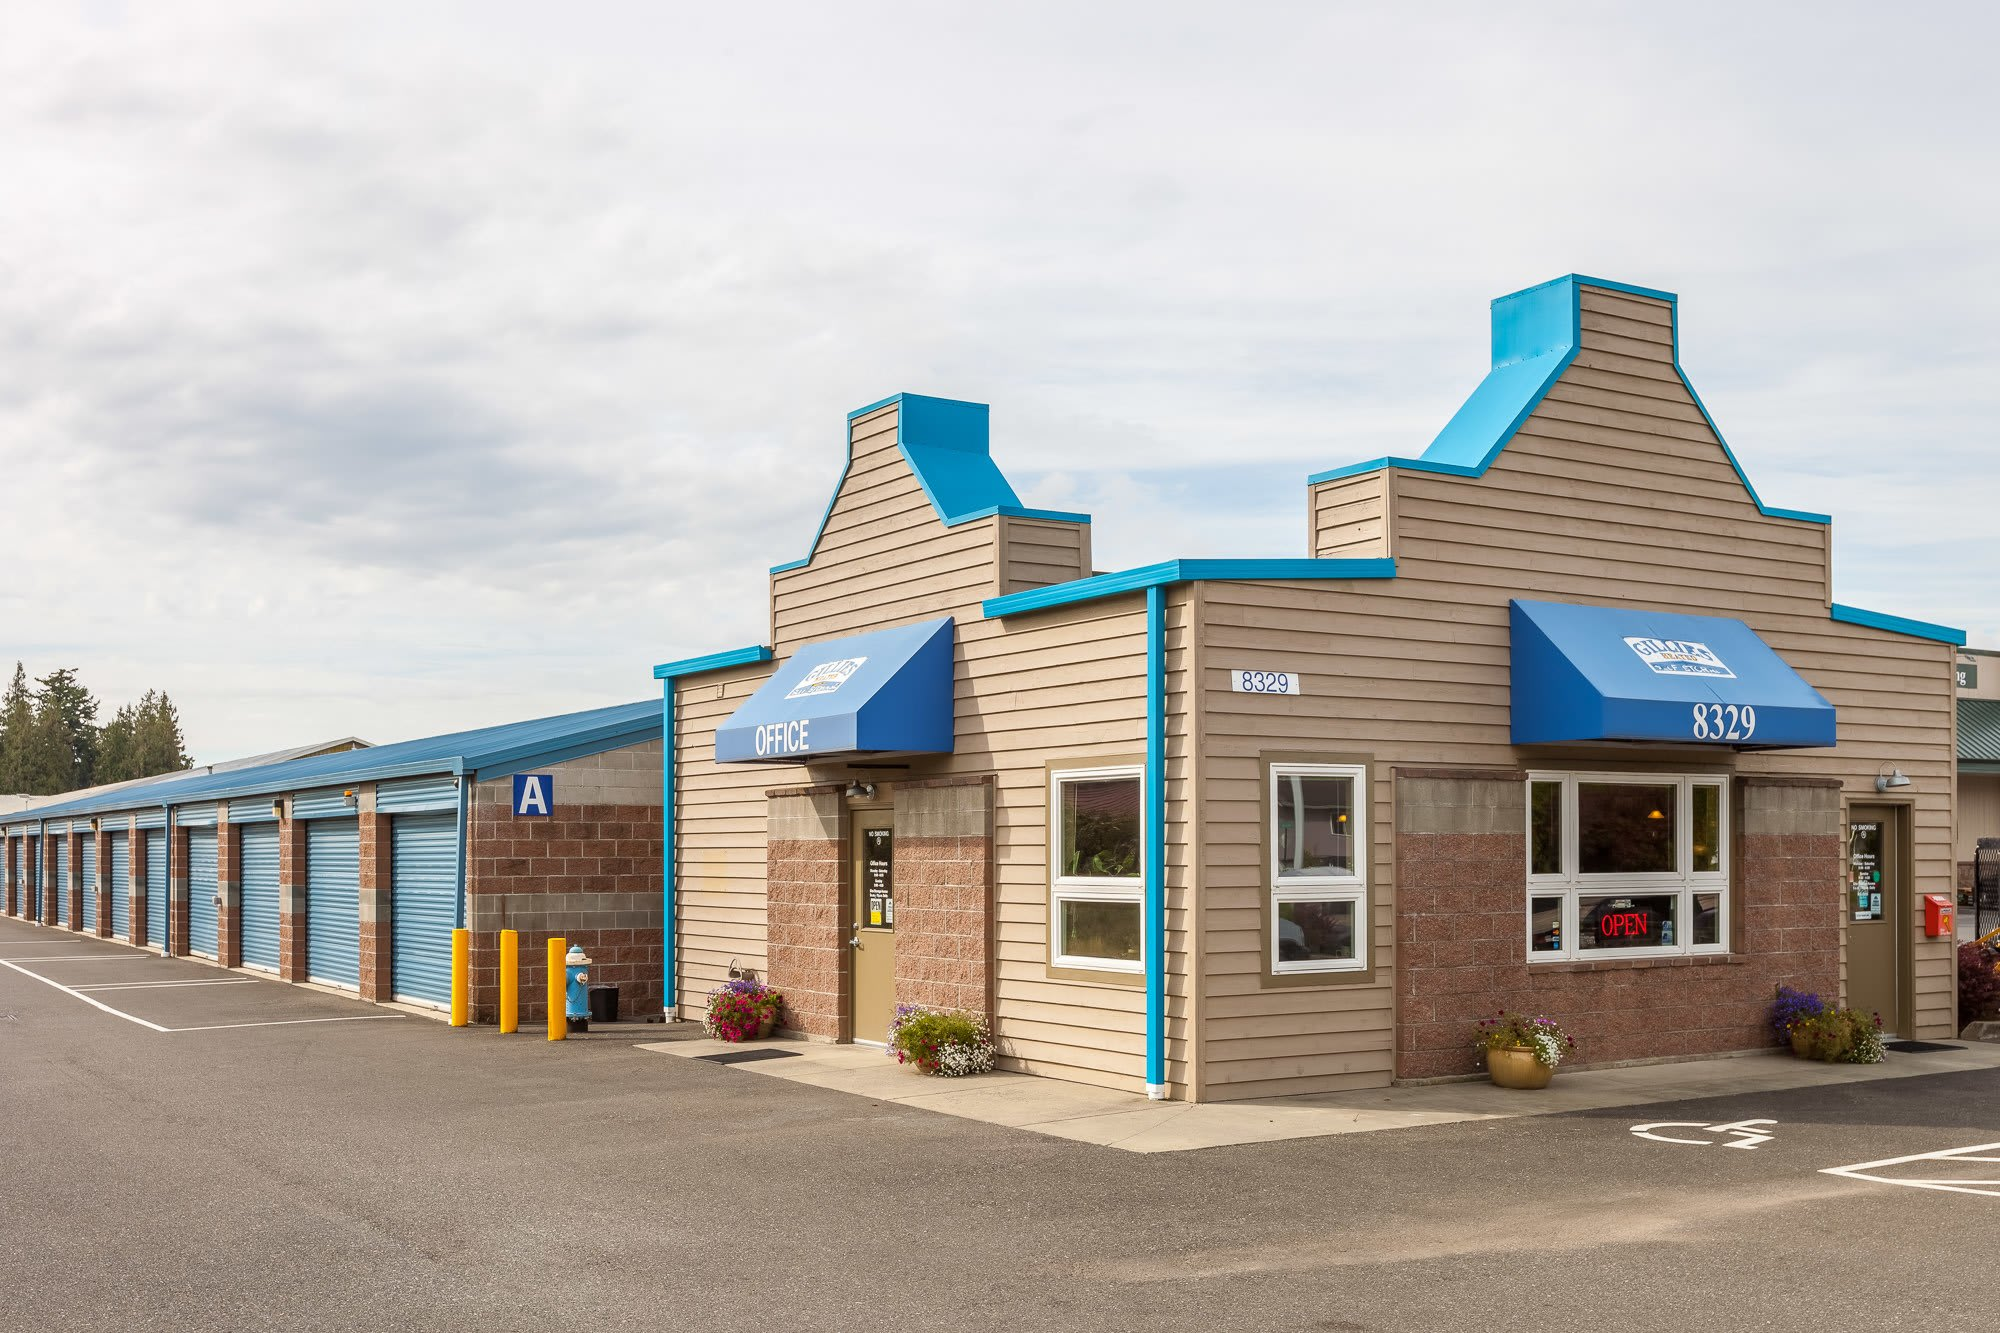 Exterior of self storage facility in Lynden, Washington